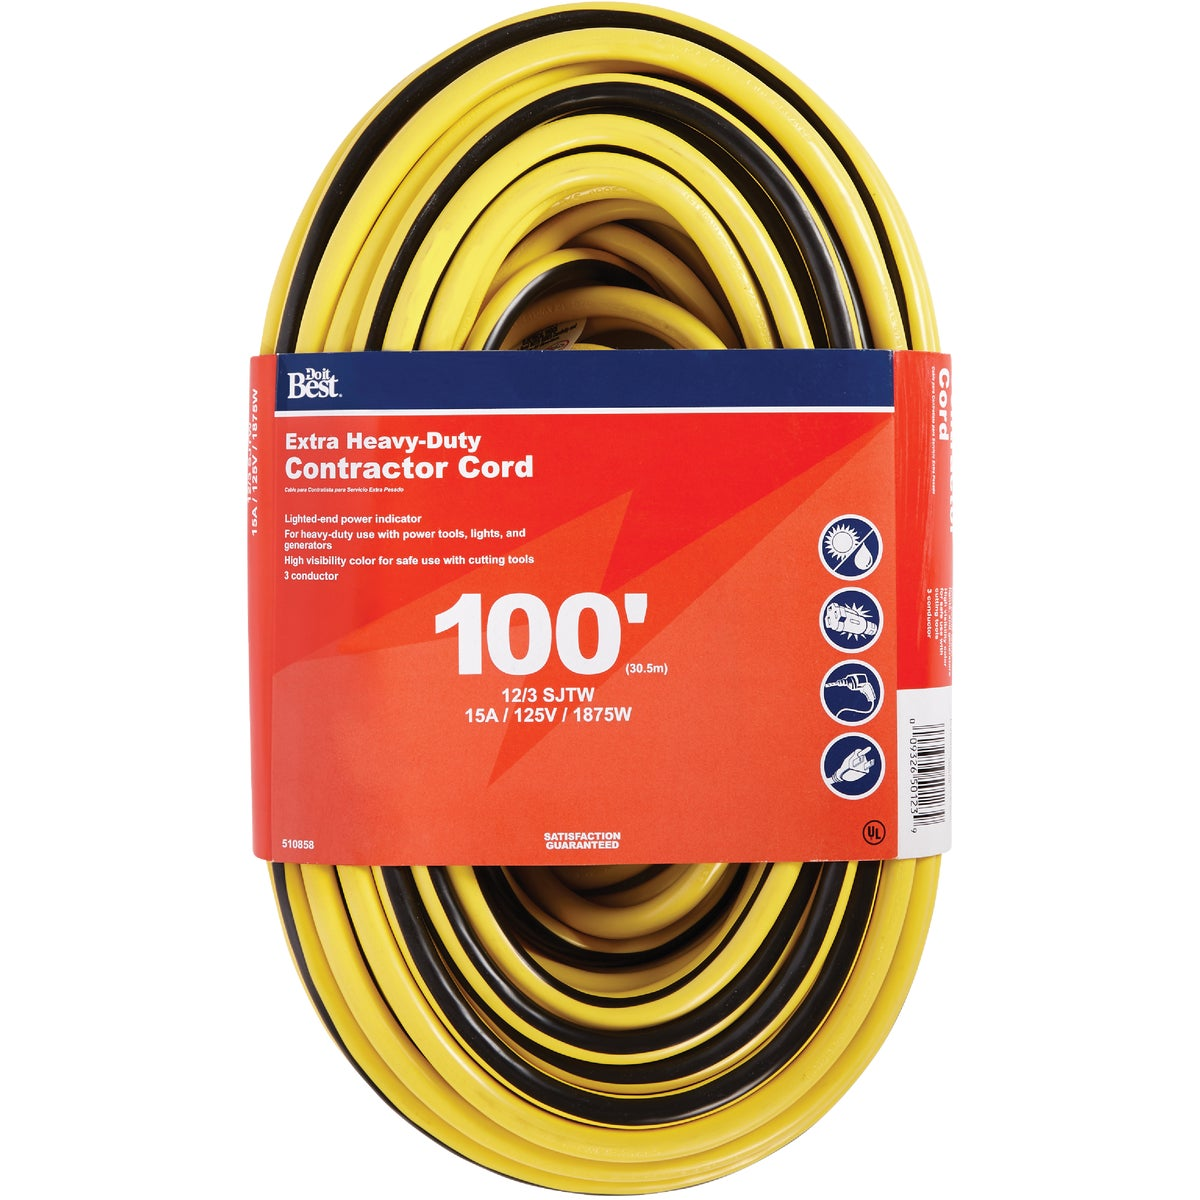 100' 12/3 LIGHTED CORD - 553056 by Coleman Cable Hwg